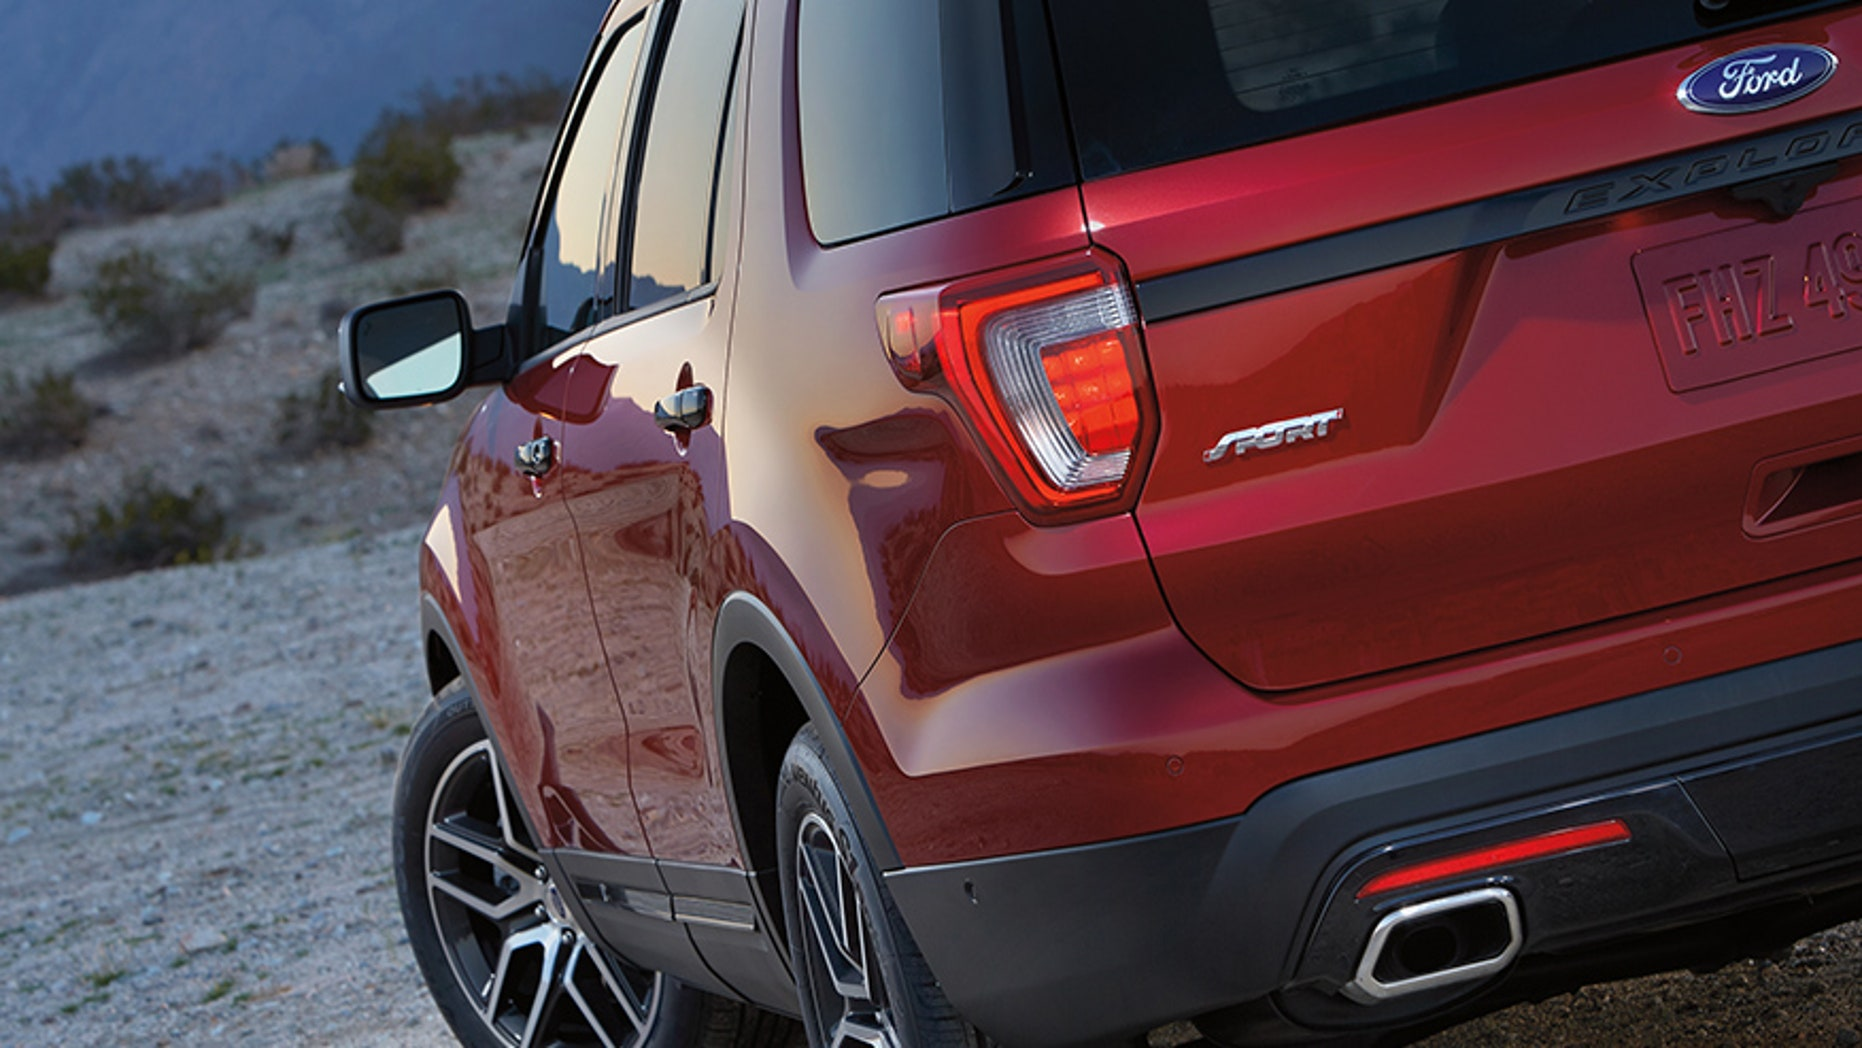 Ford Explorer Exhaust Leak >> Feds Expand Probe Into Ford Explorer Exhaust Fume Leaks Fox News